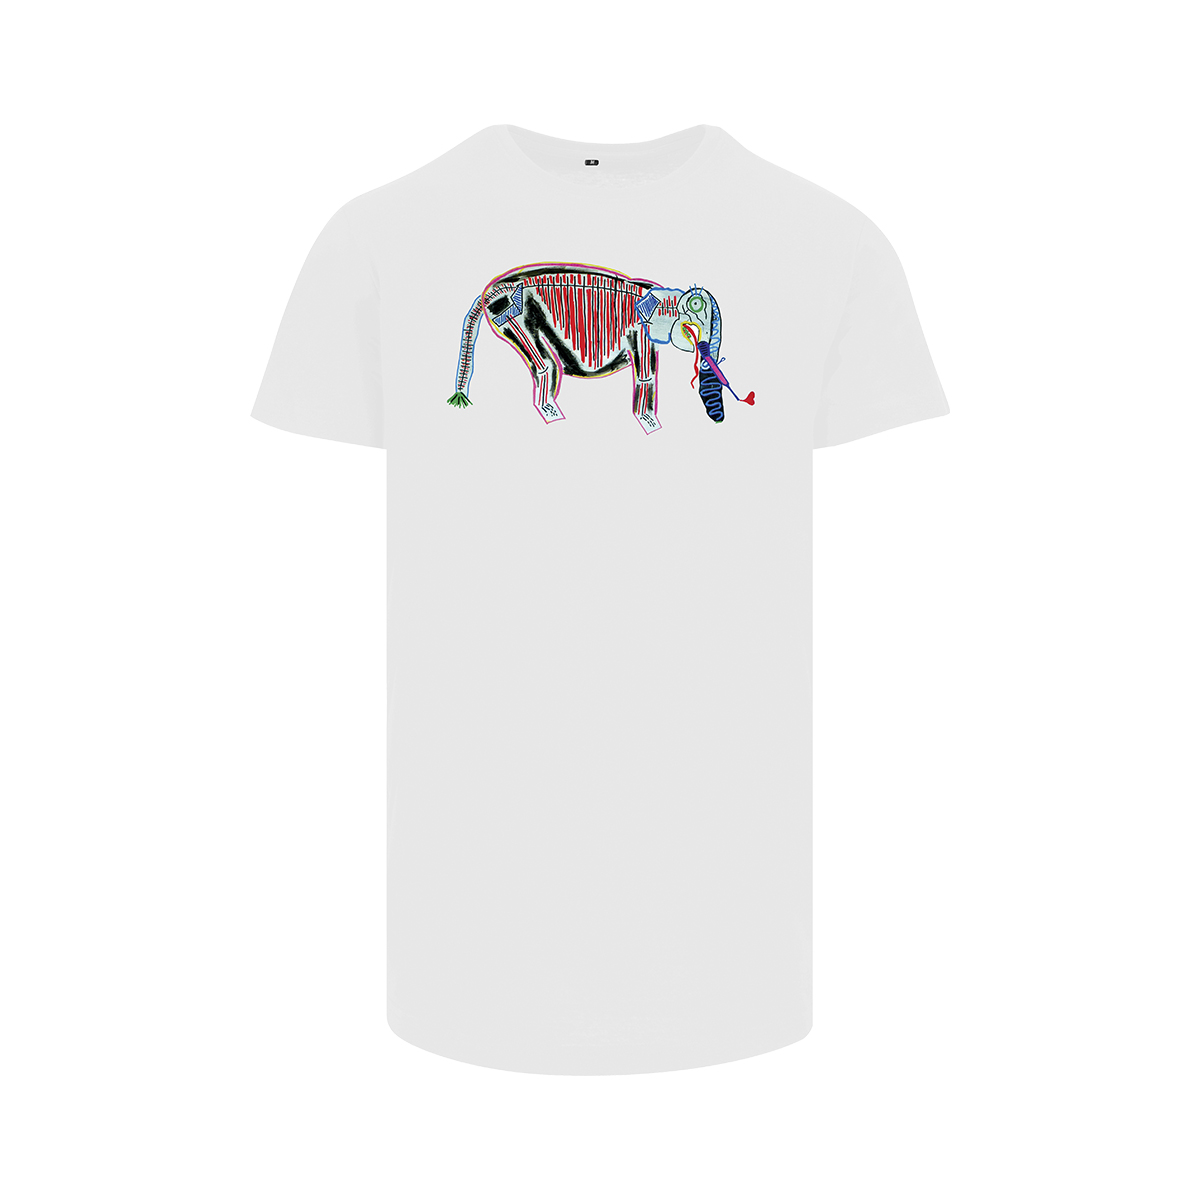 Frank Willems - Longfit T-shirt - HAVE YOU SEEN MY IVORY - WHT